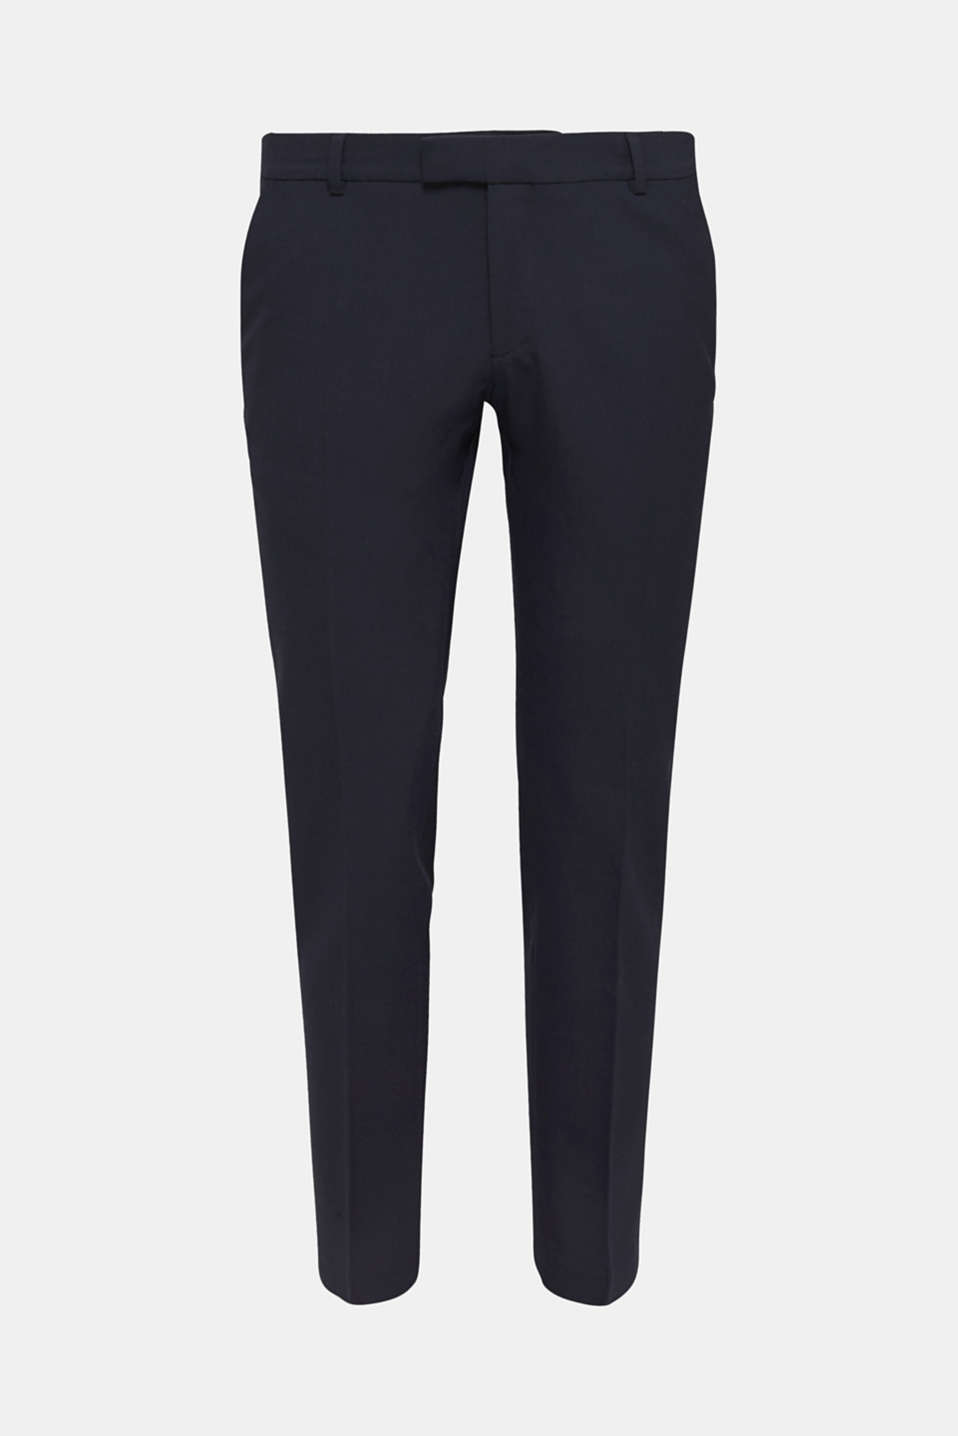 ACTIVE SUIT BLACK trousers made of blended wool, DARK BLUE, detail image number 5